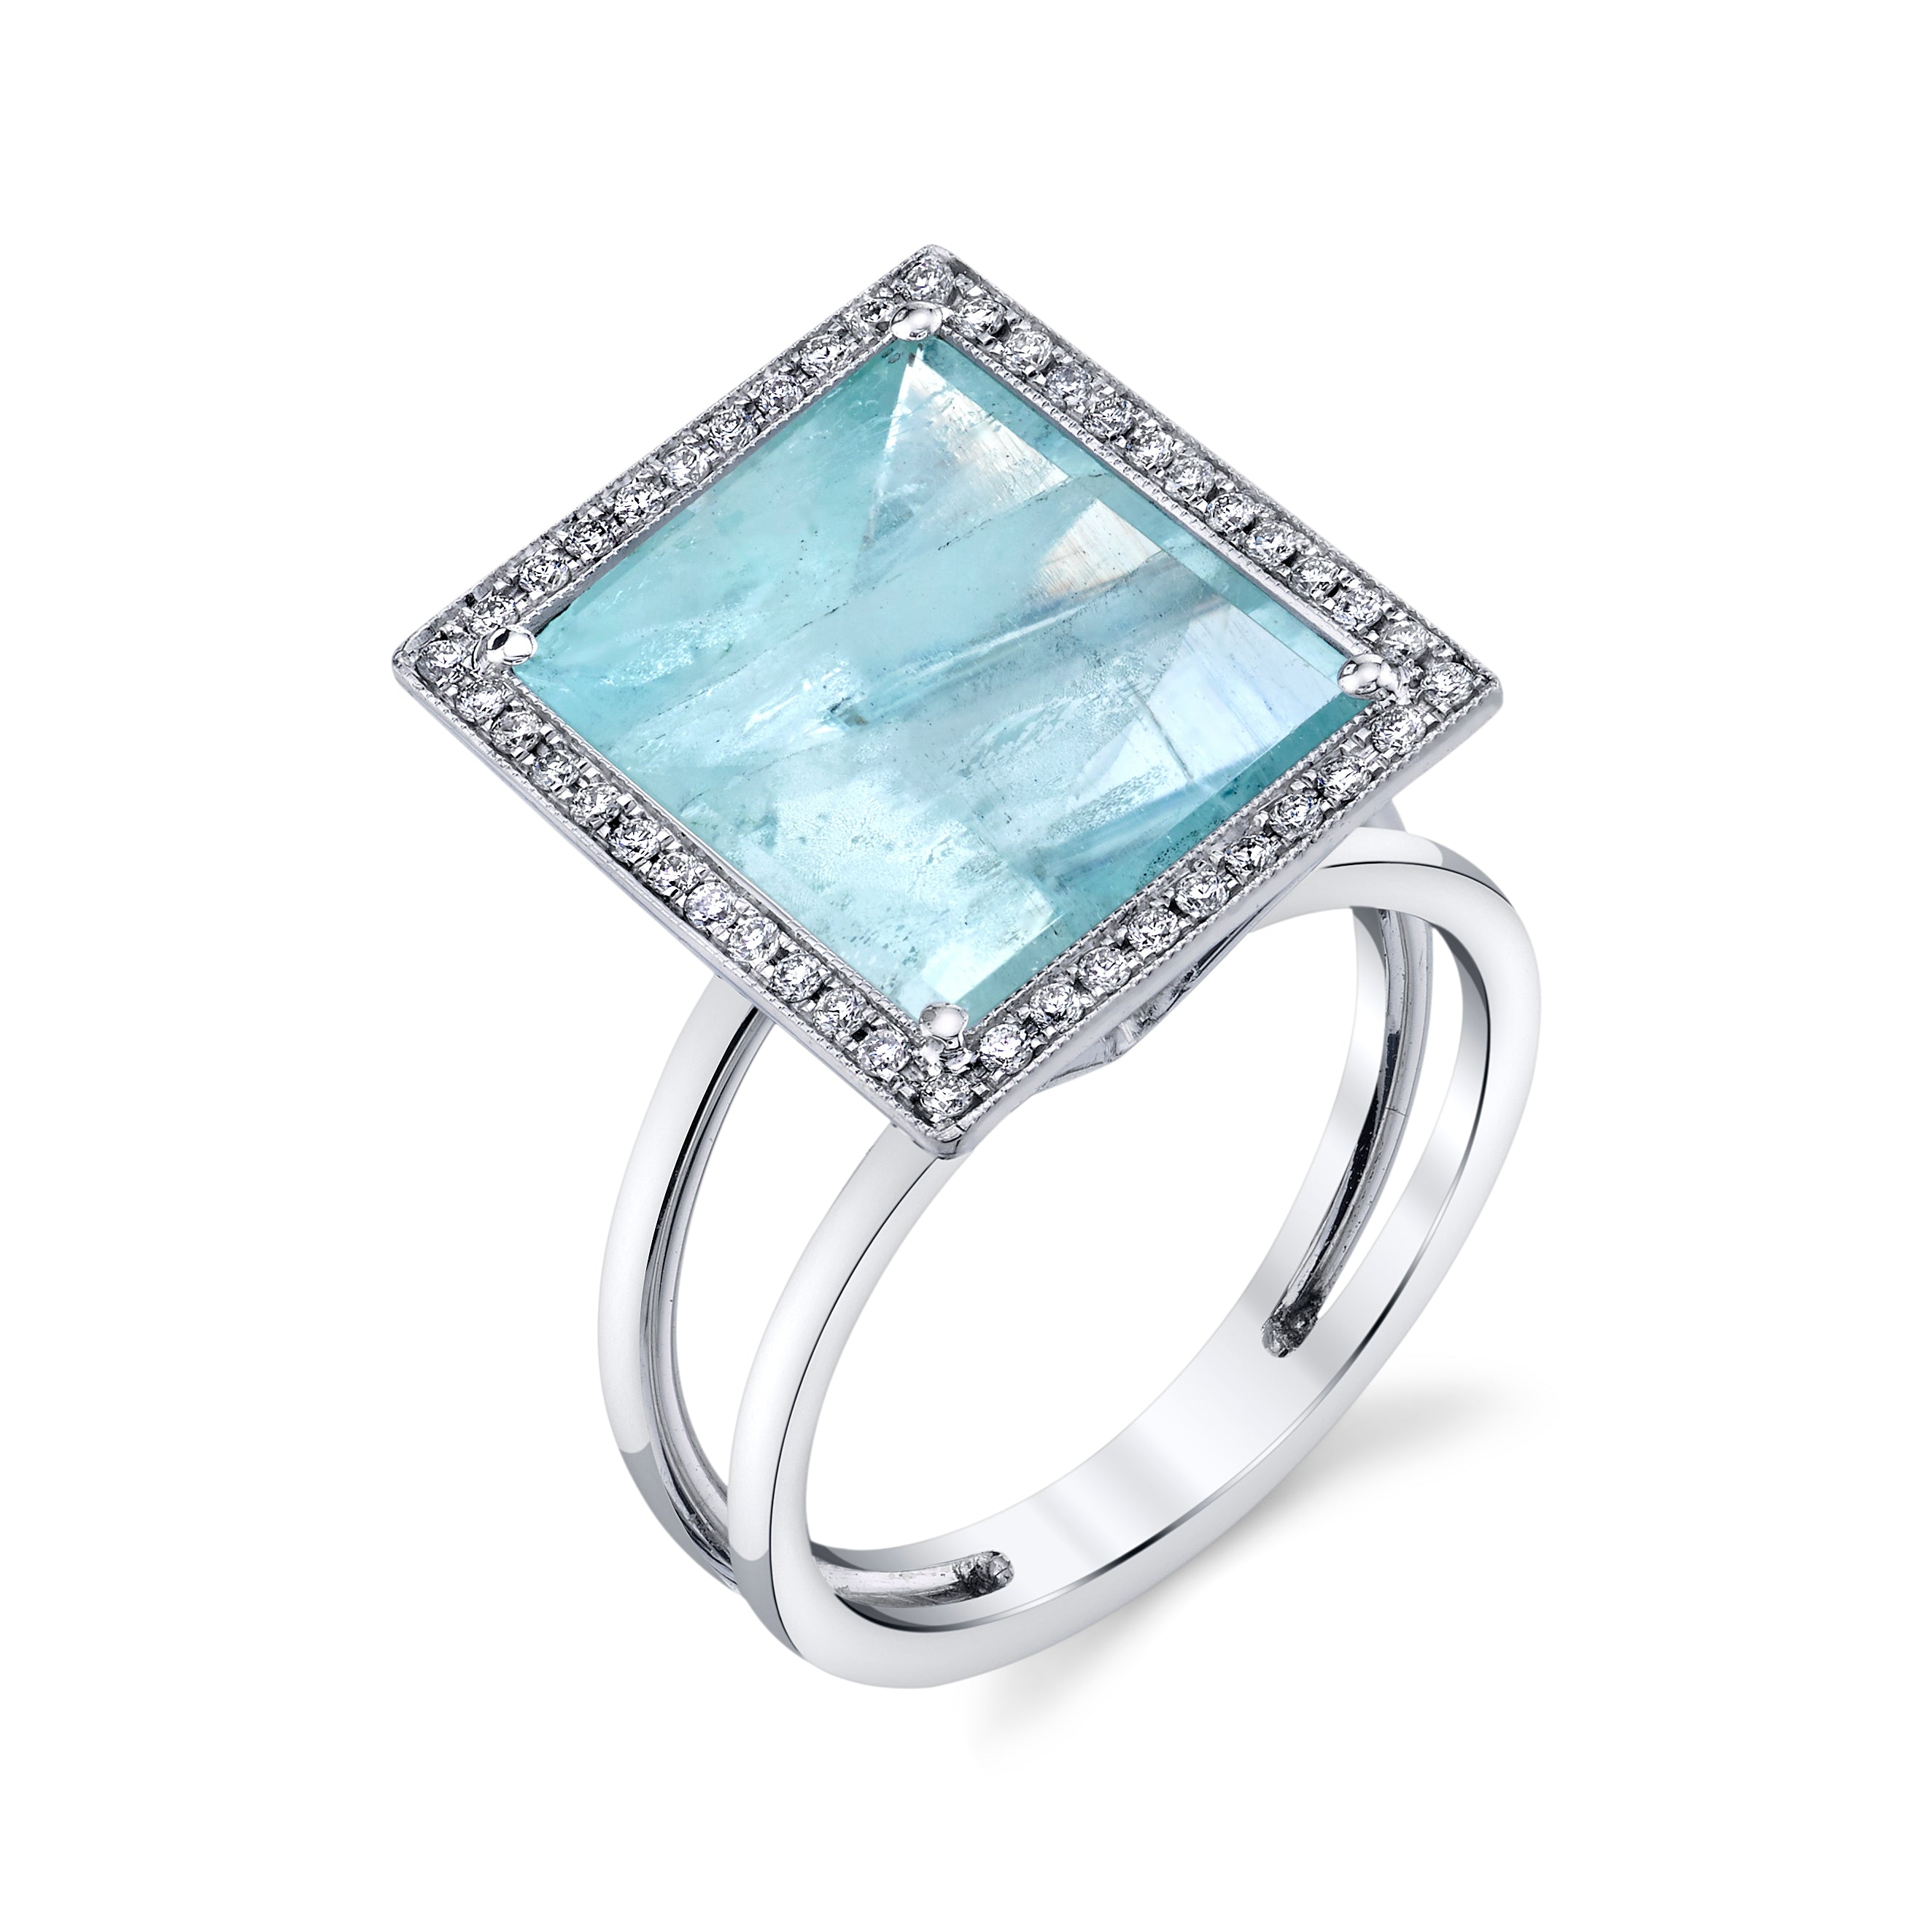 Medium Rectangular Mirror Cut Ring with Pave Halo